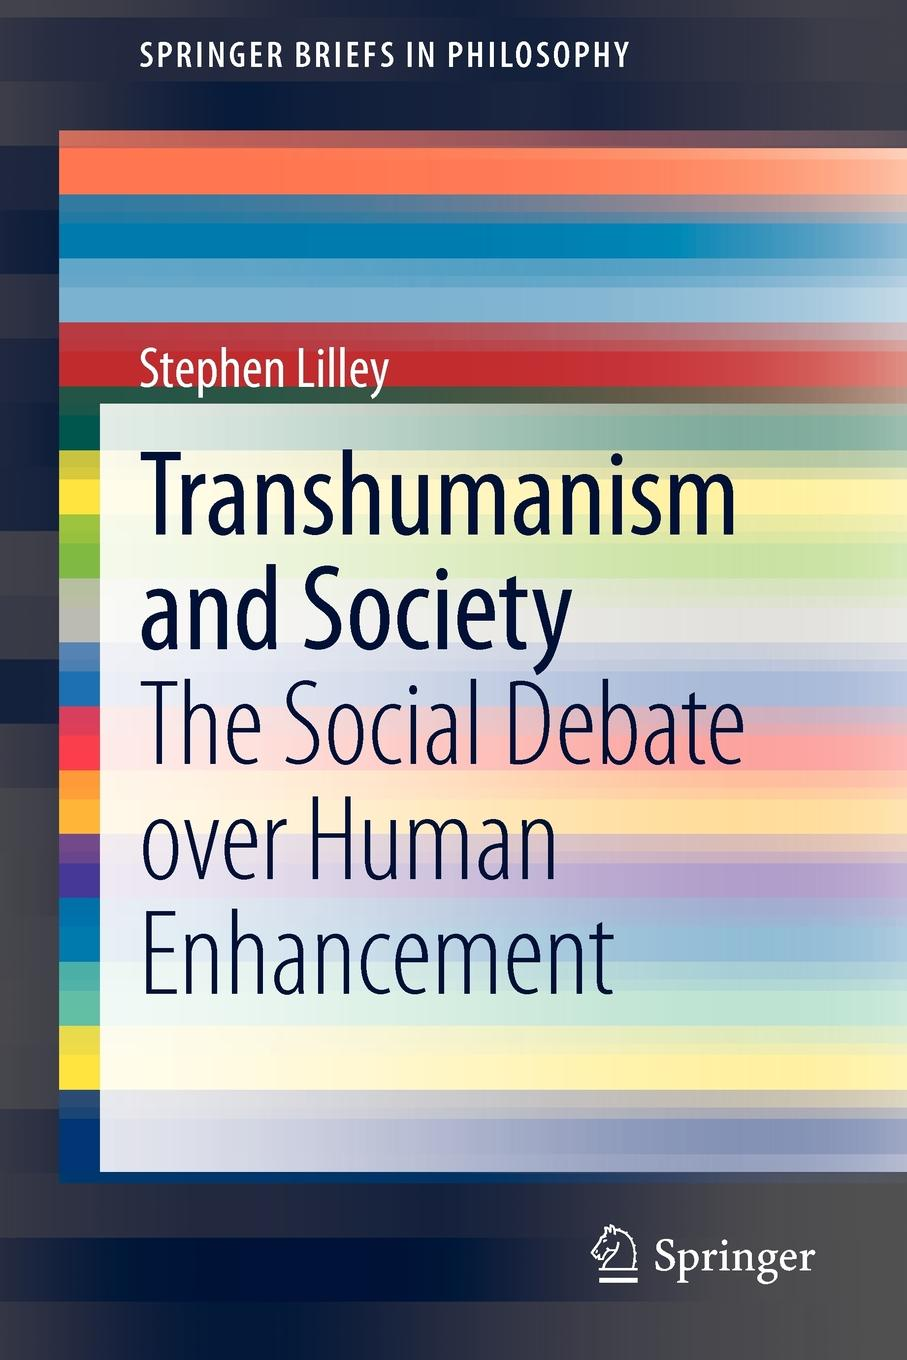 Transhumanism and Society. The Social Debate over Human Enhancement. Stephen Lilley